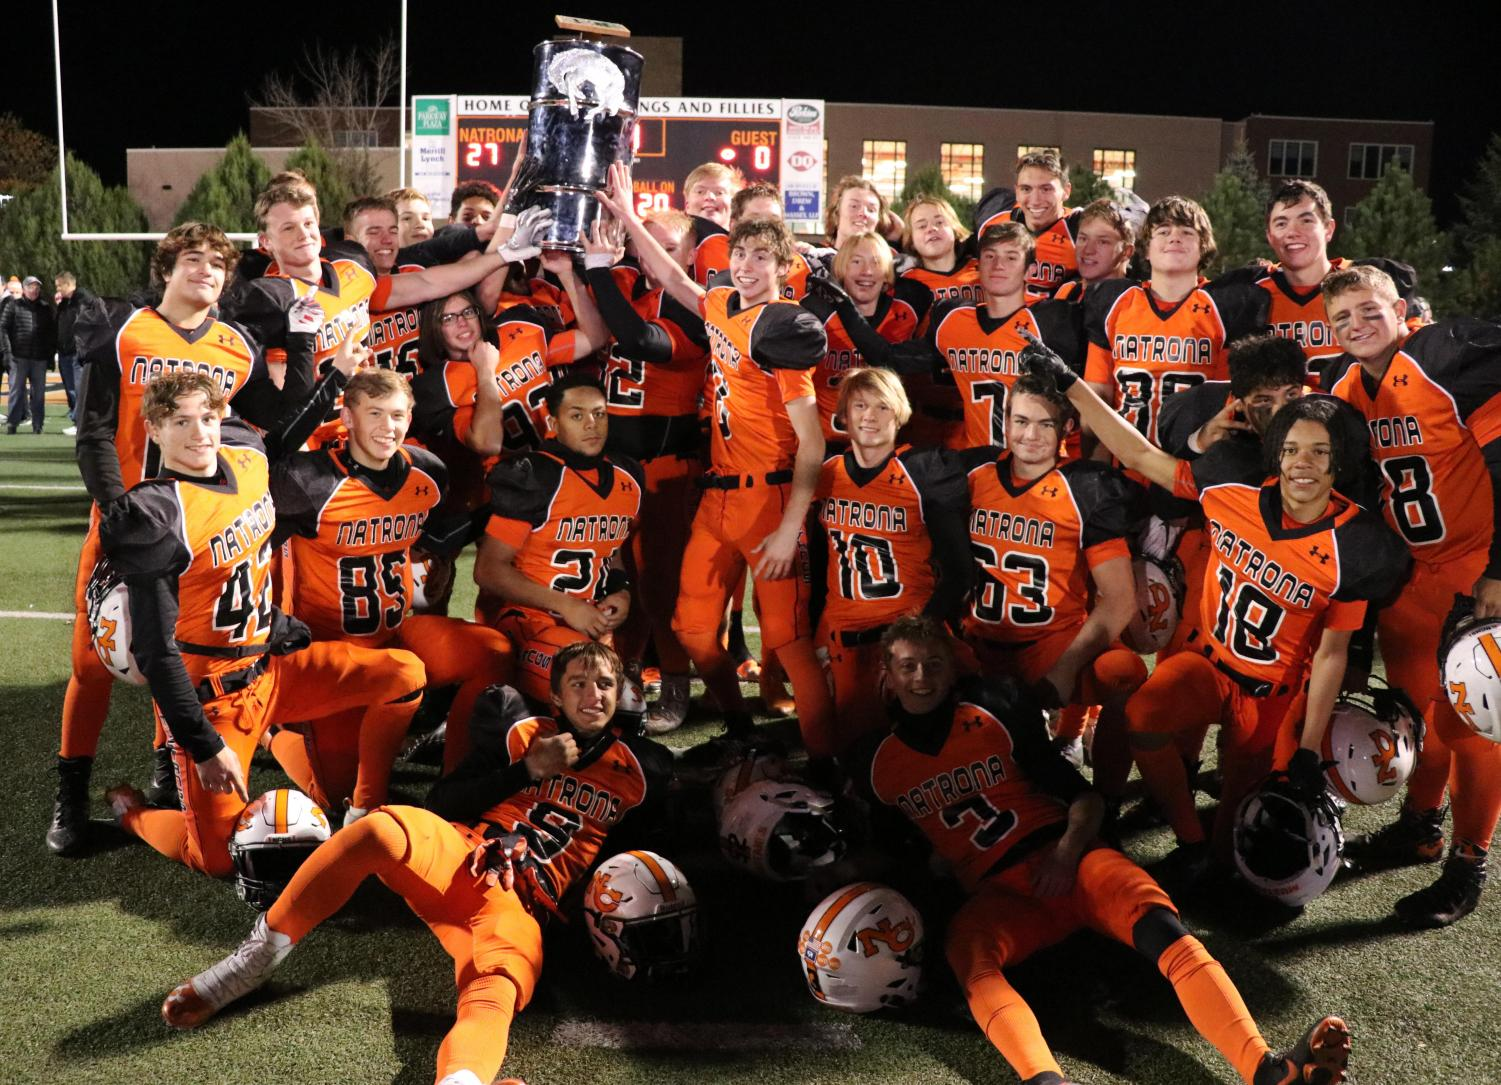 A symbol of victory: The NC mustangs hoist the Oil Bowl trophy after defeating the KW trojans 27-0. This is the mustangs' 42nd Oil Bowl win. The trophy will be on display at NC for the third year in a row.